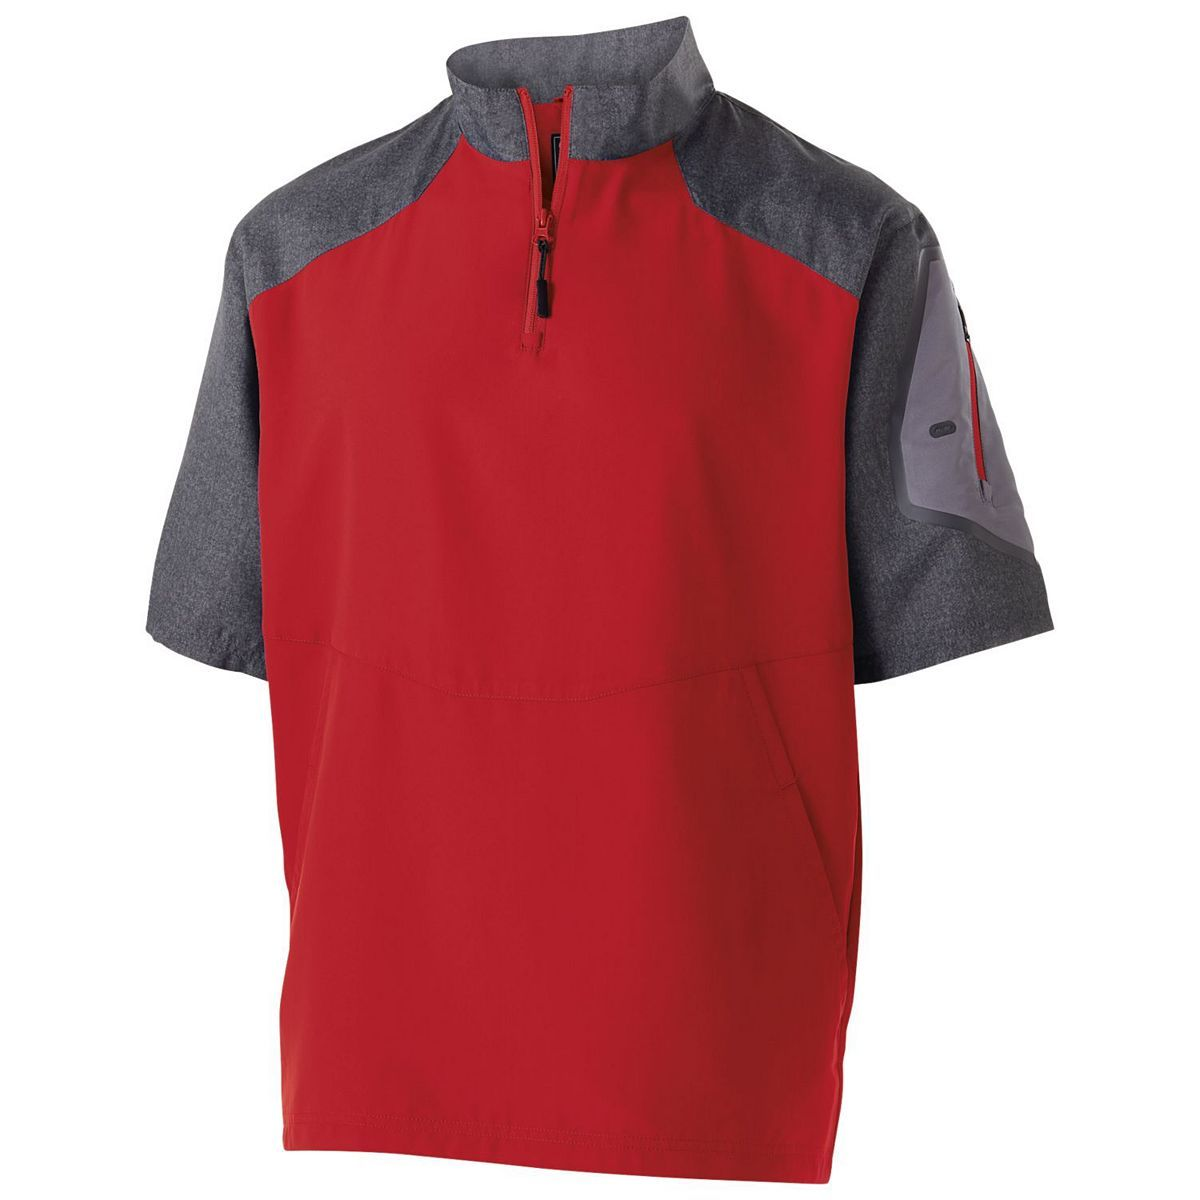 Youth Raider Short Sleeve Pullover  - Carbon Print/scarlet